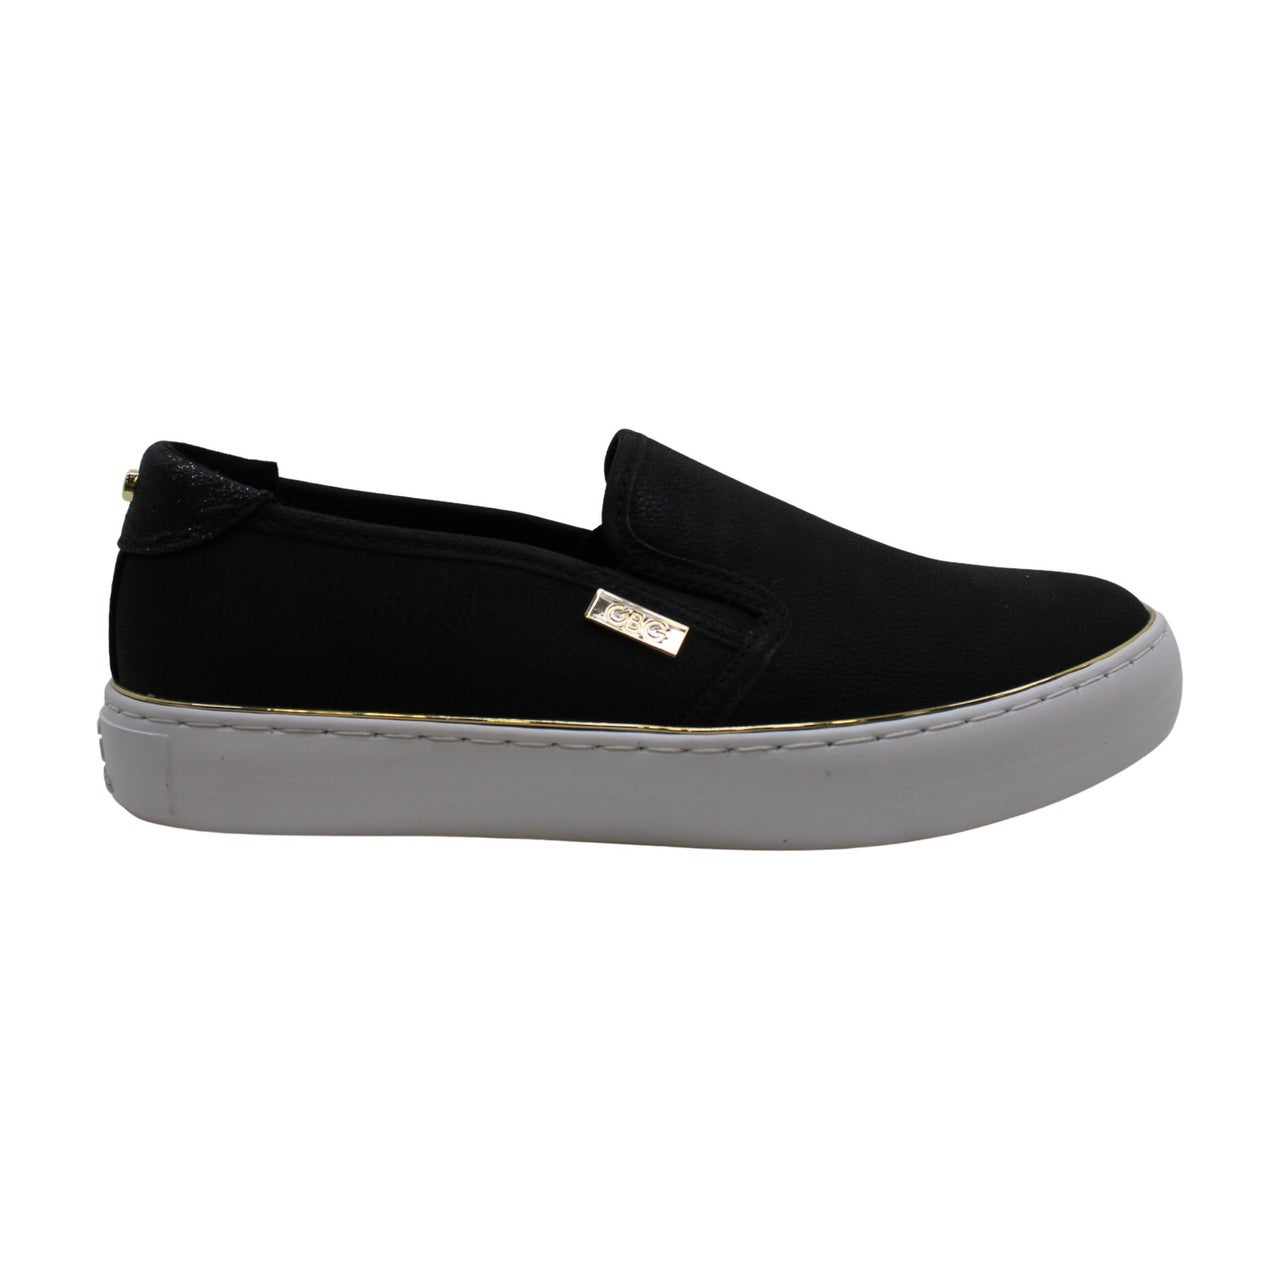 slip on guess shoes